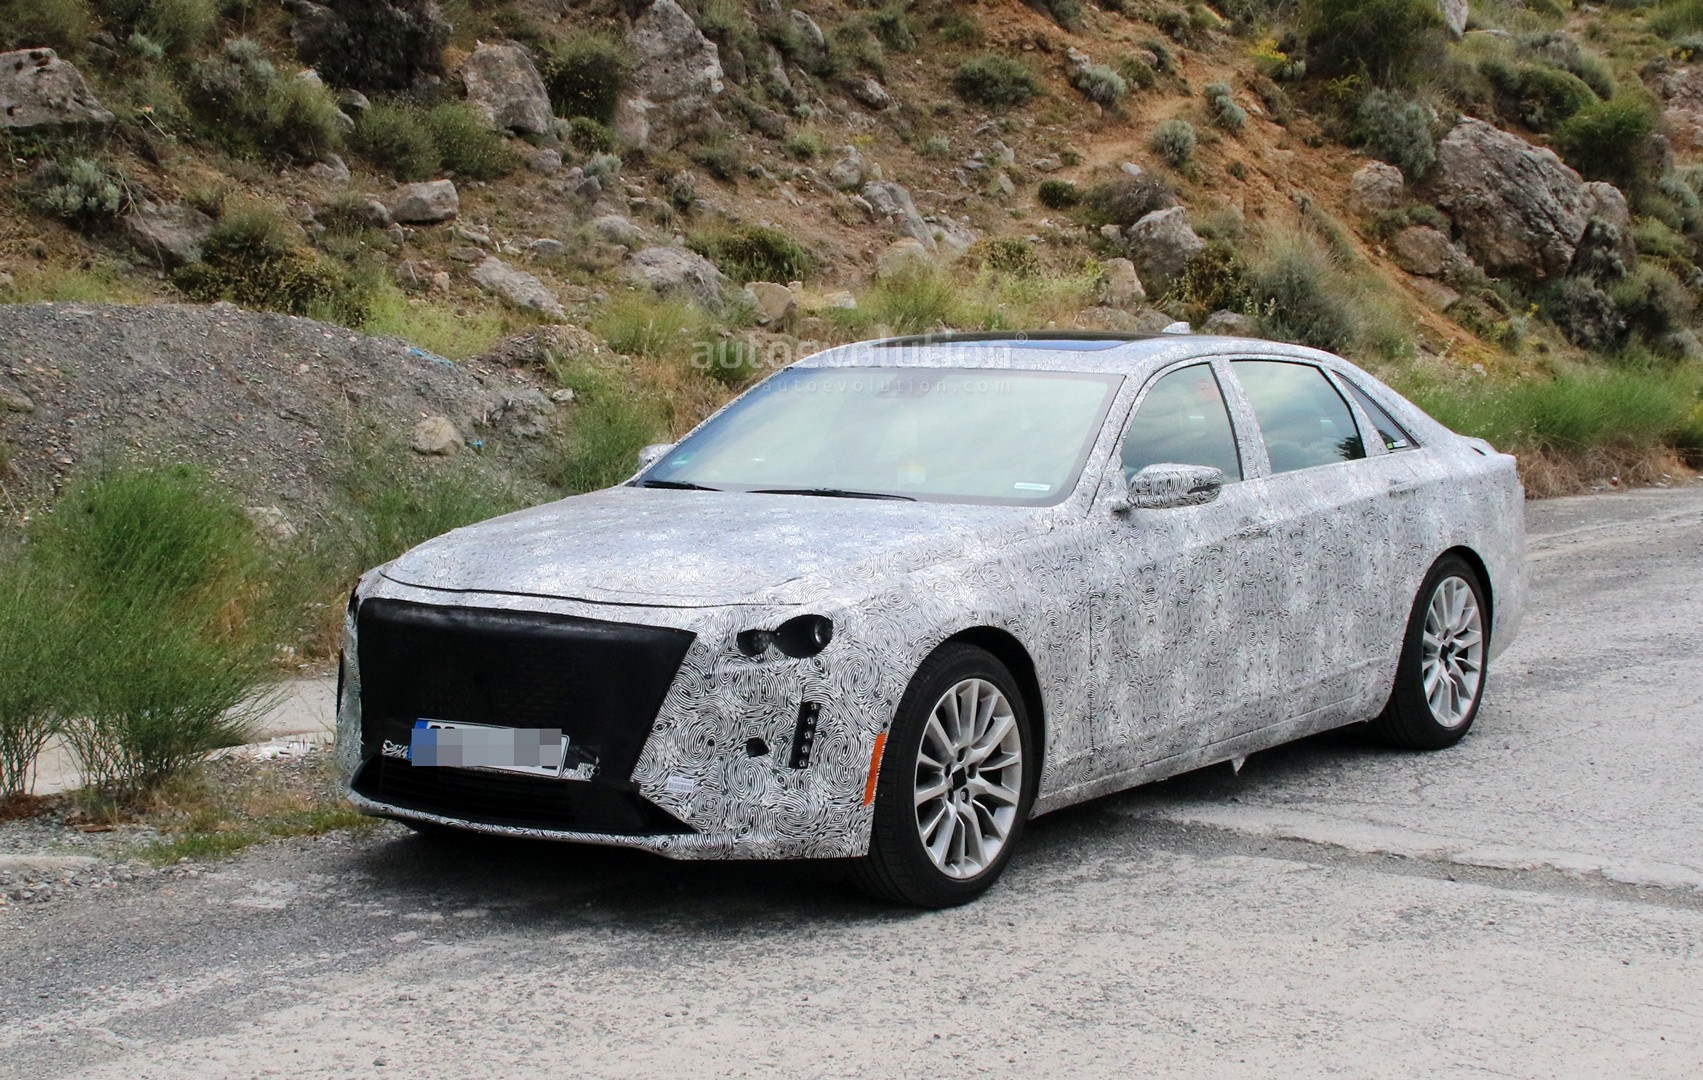 Car Dealerships In Ct >> 2019 Cadillac CT6 Facelift Makes Spyshots Debut, Has Escala Styling - autoevolution